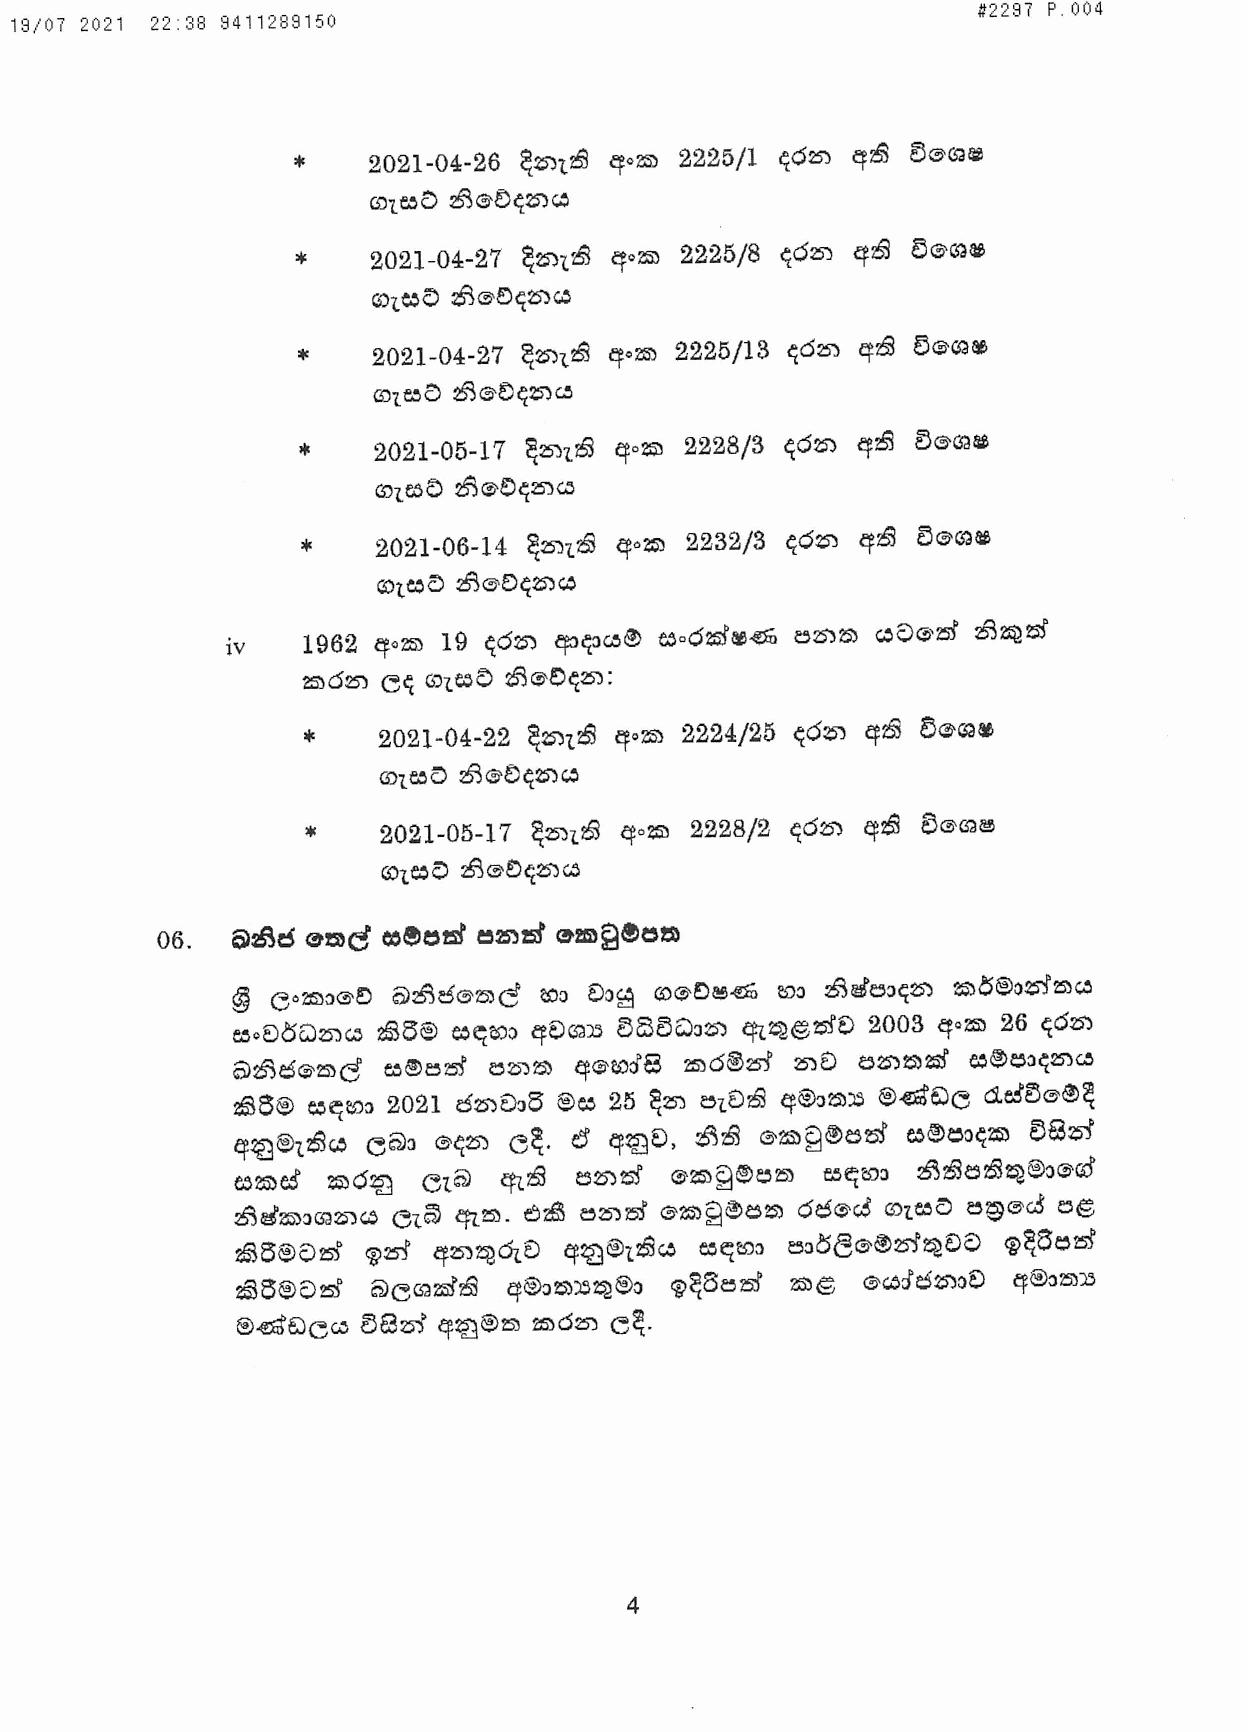 Cabinet Decision on 19.07.2021 page 004